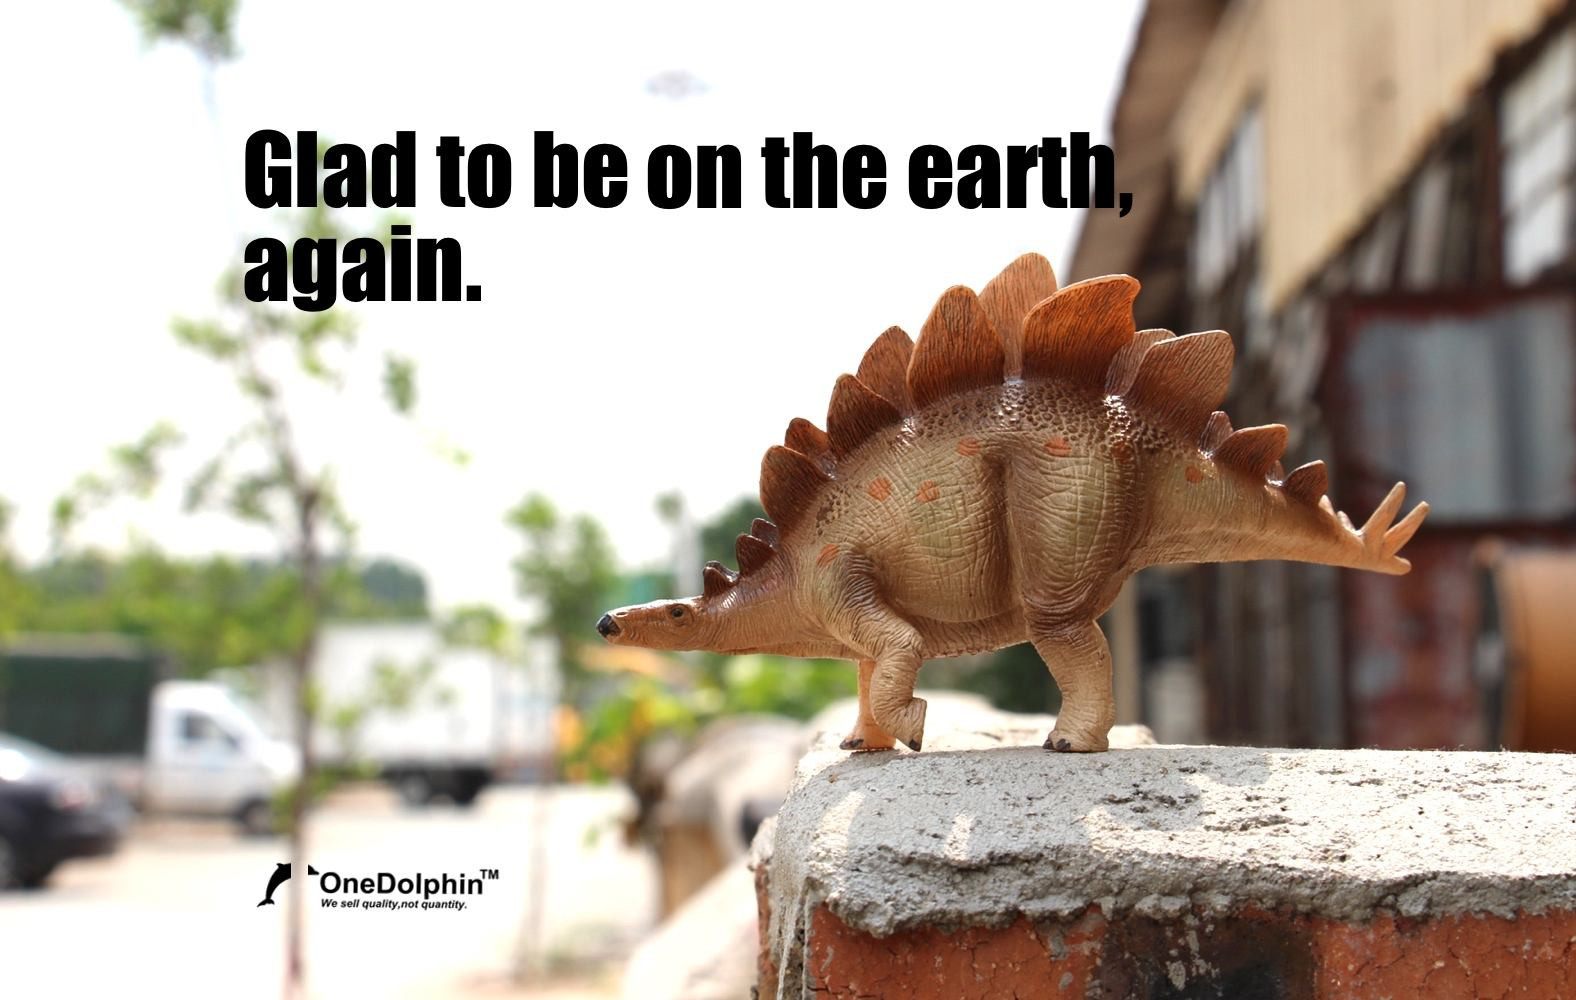 Stegosaurus: glad to be on the earth,again